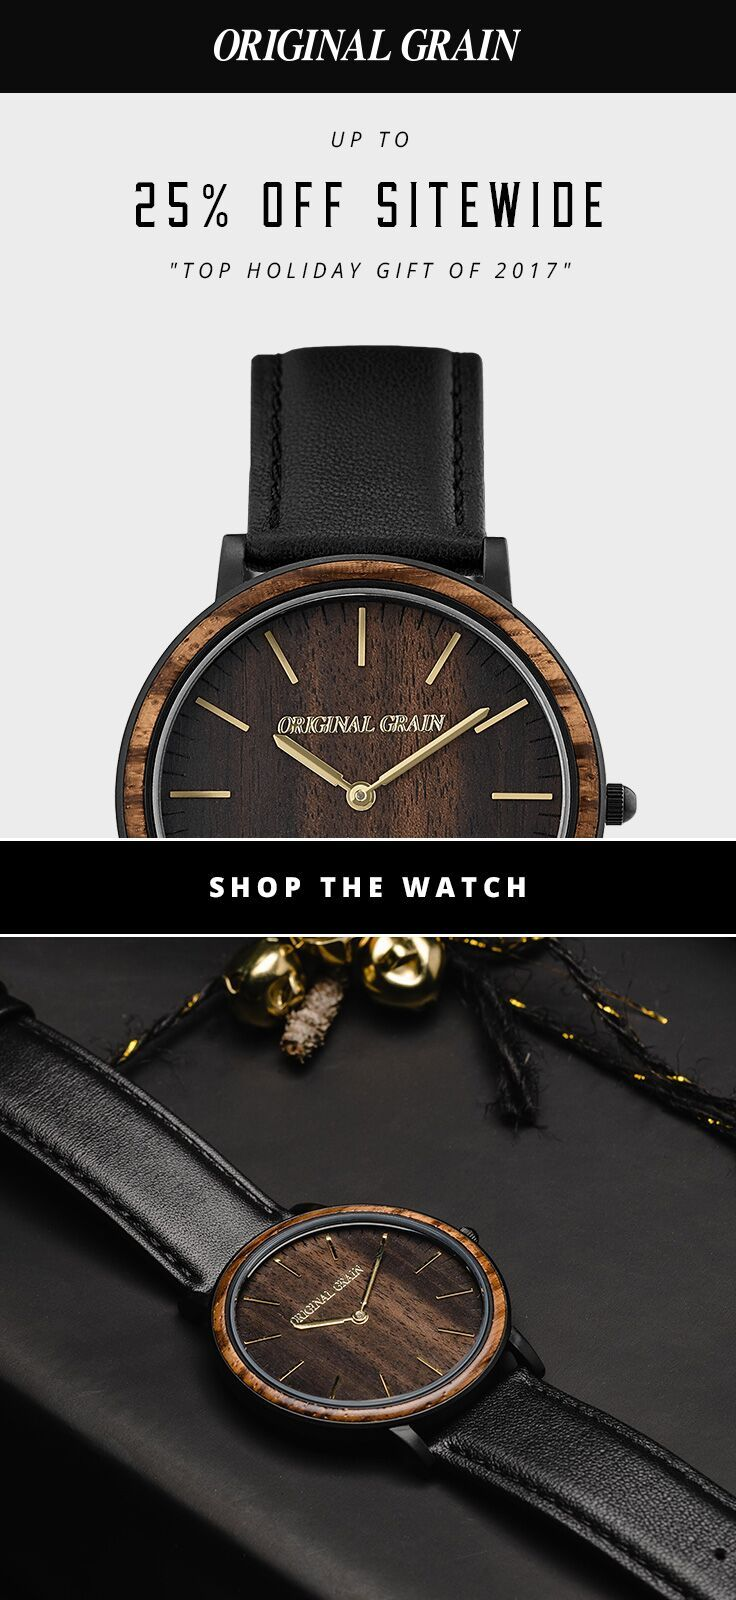 casual bamboo wrist ud strap watch gift quartz wooden face inlay her genuine watches pin with for analog leather and him wood